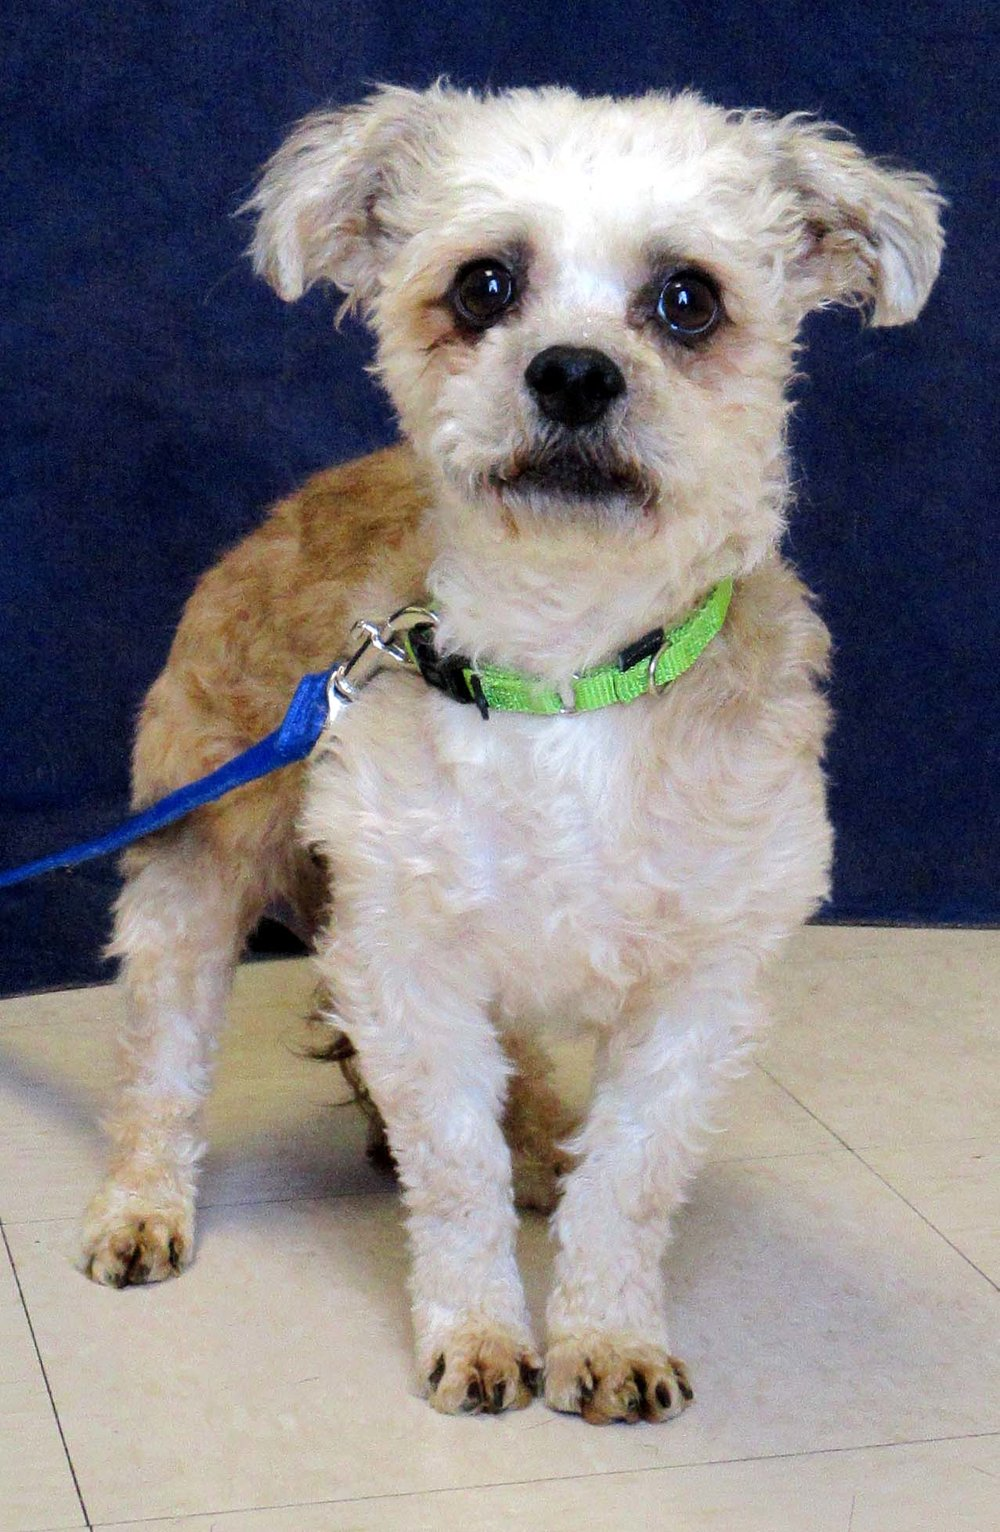 Santa is a 10-year-old Poodle Mix. He is looking for a calm home where he can sleep and cuddle. He becomes comfortable around new people and places initially--he is also very calm and easy going.